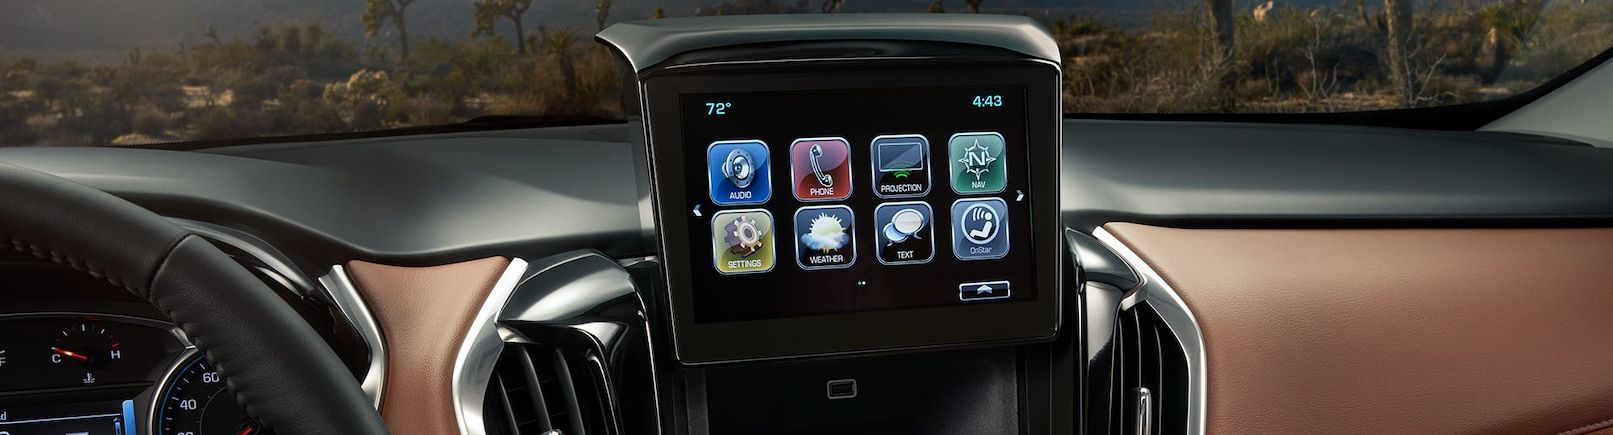 Touchscreen in the 2019 Traverse